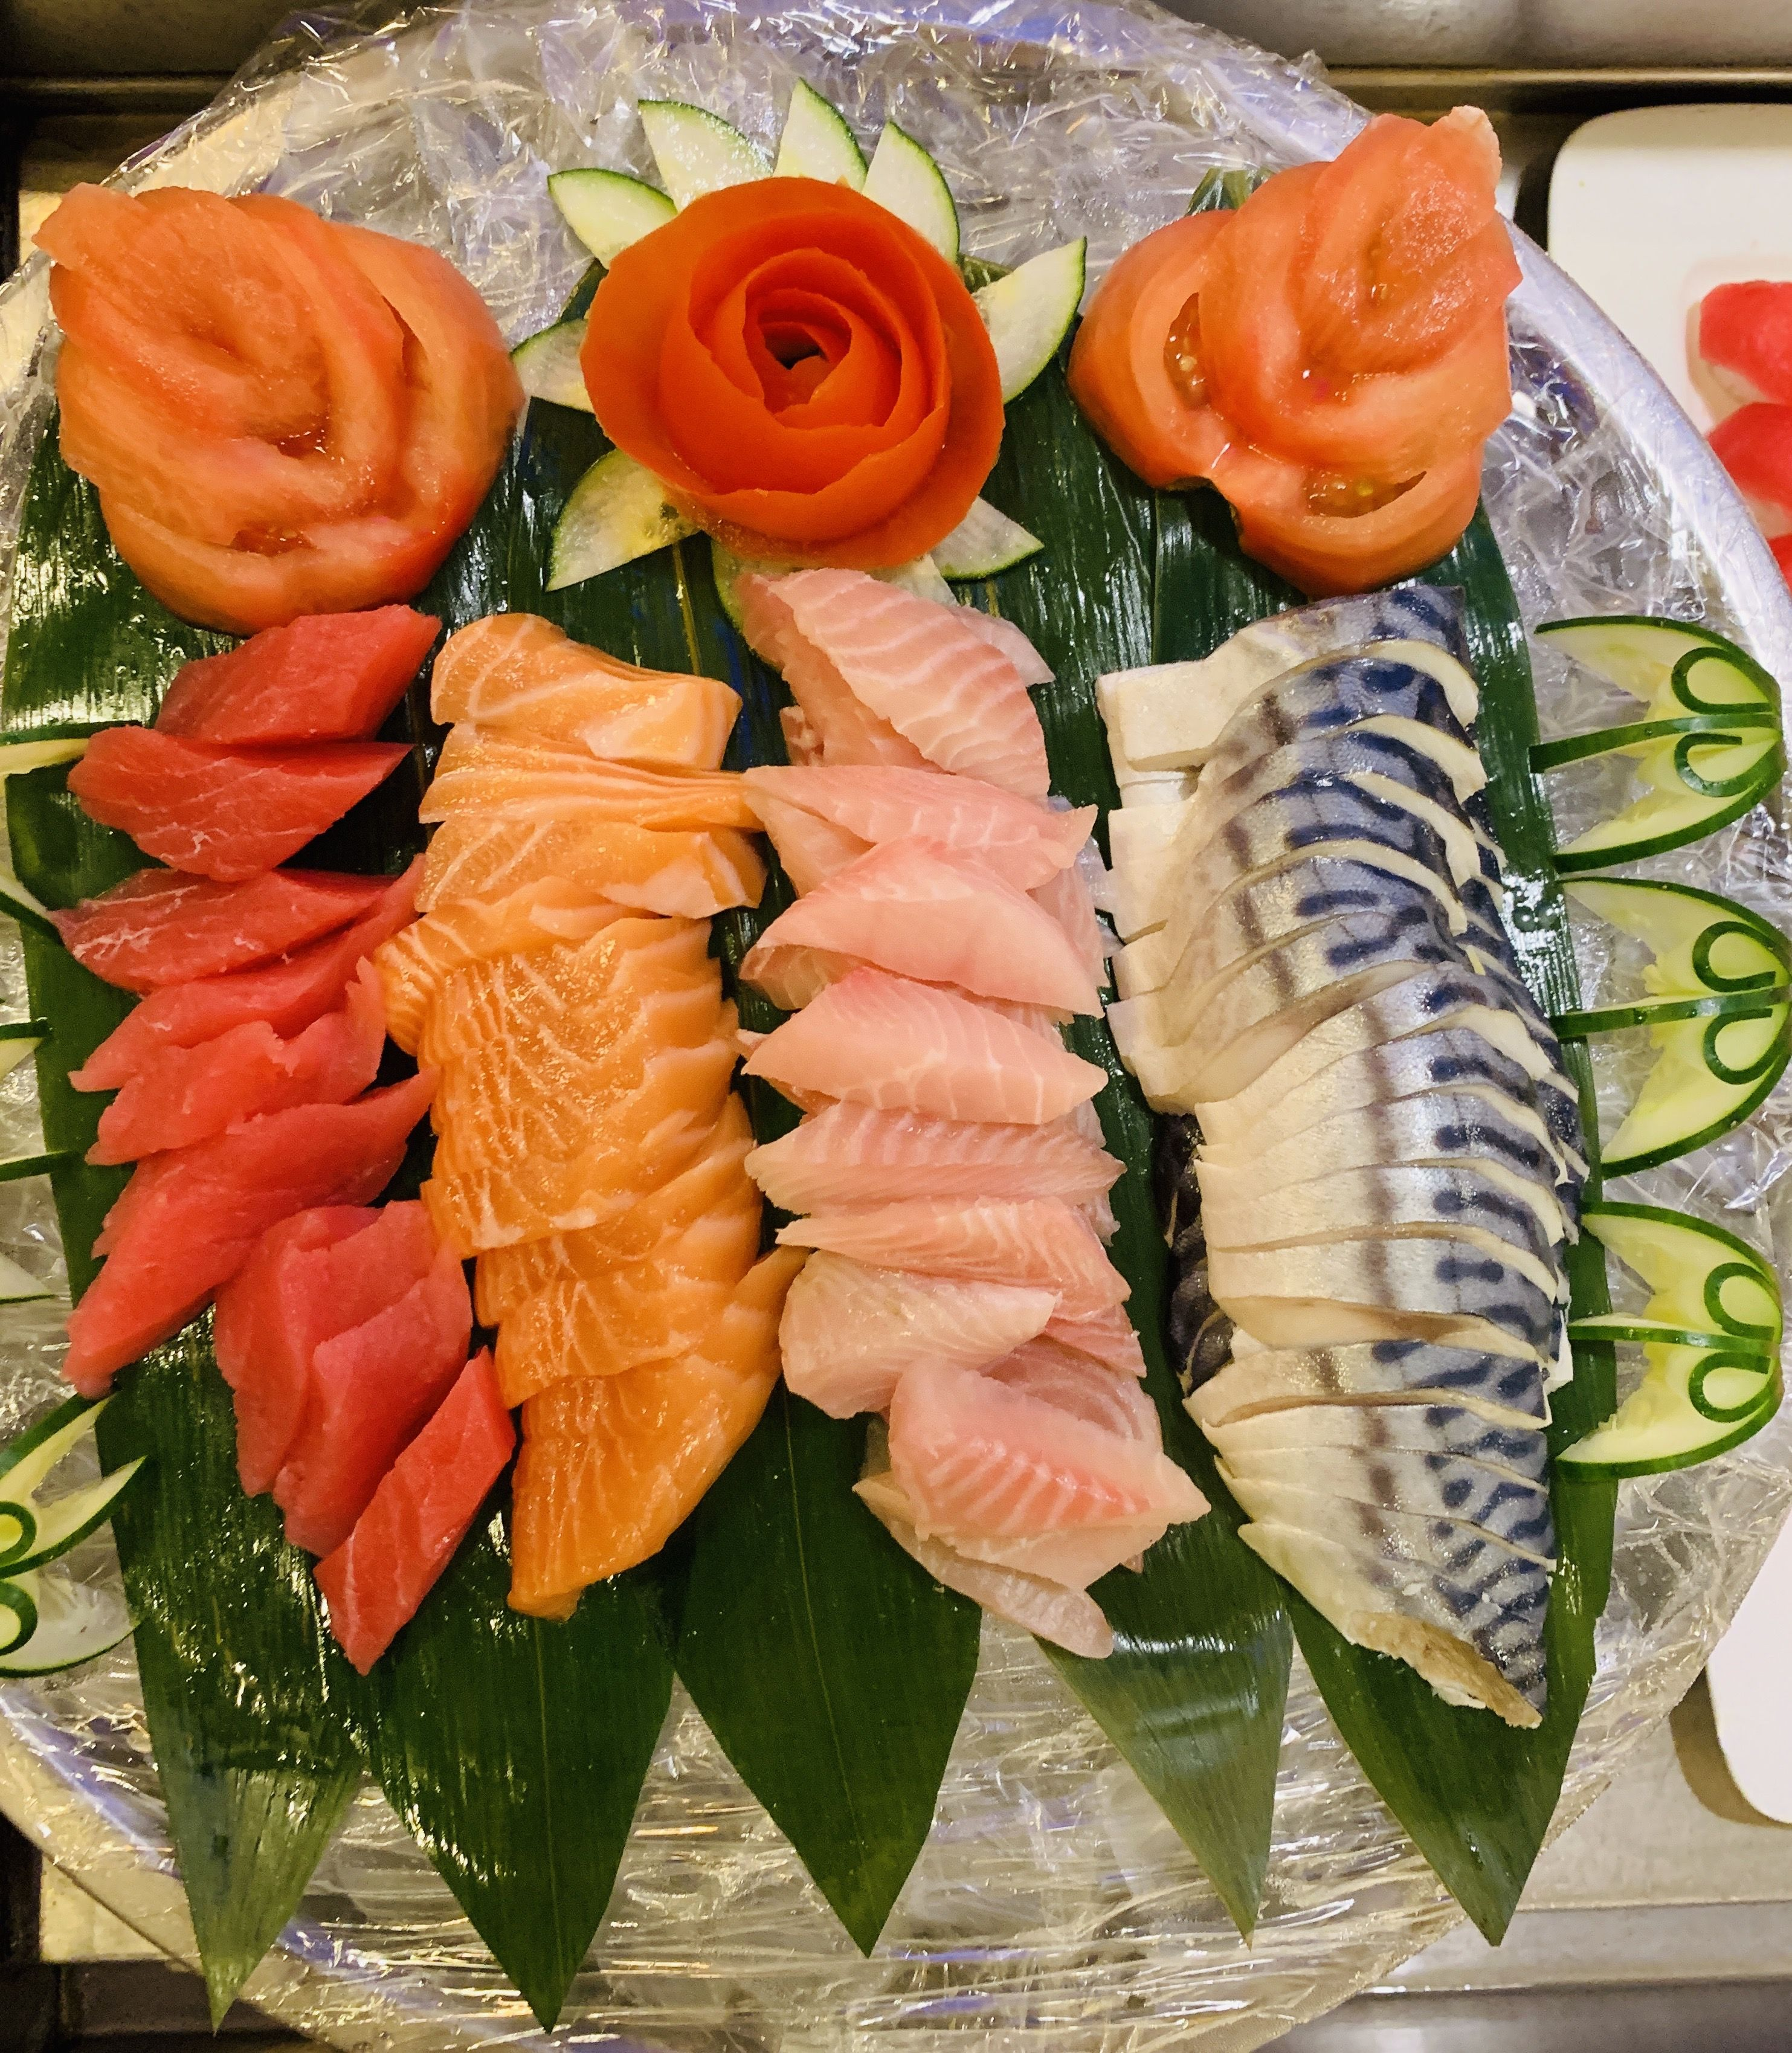 We Are A Month Away From Valentines Book Your Valentine S Party Or Order Your Next Catering Order With Koki Buffet In 2020 Salmon Sushi Japanese Food Food